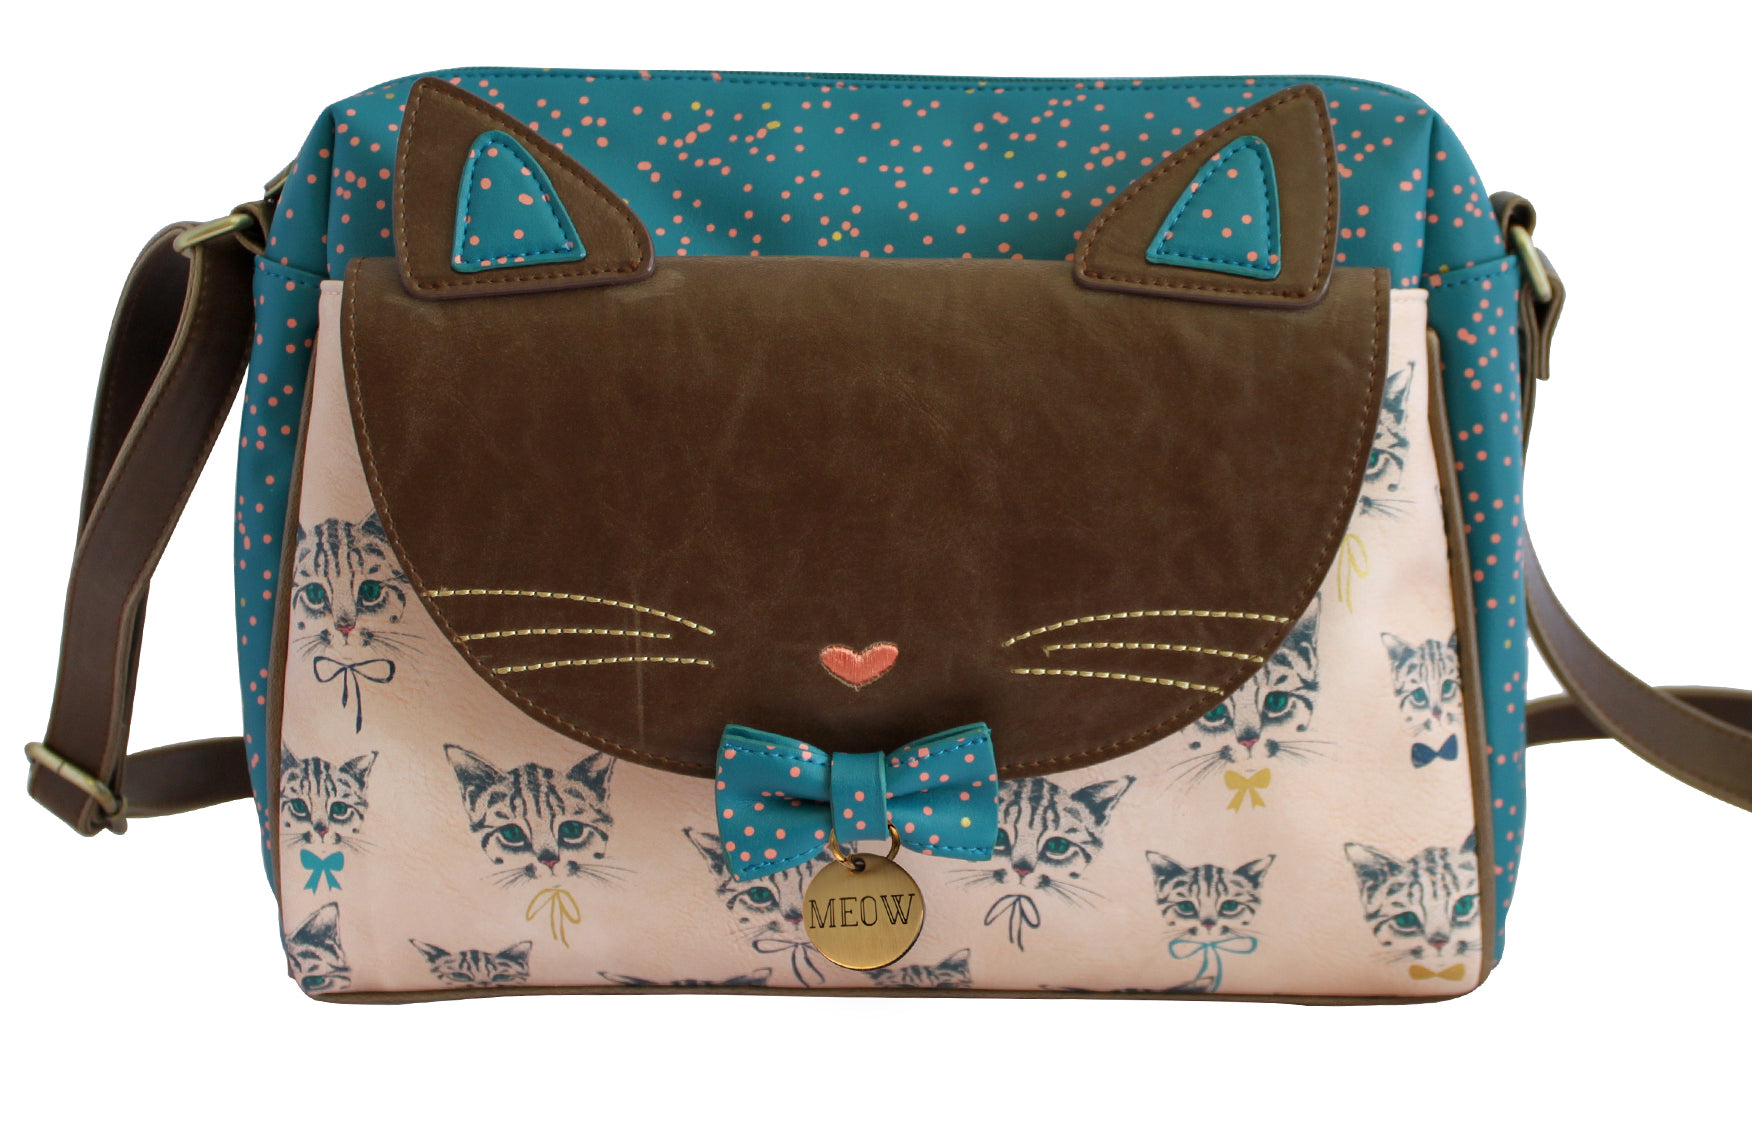 Meow Satchel Cross Body Shoulder Bag